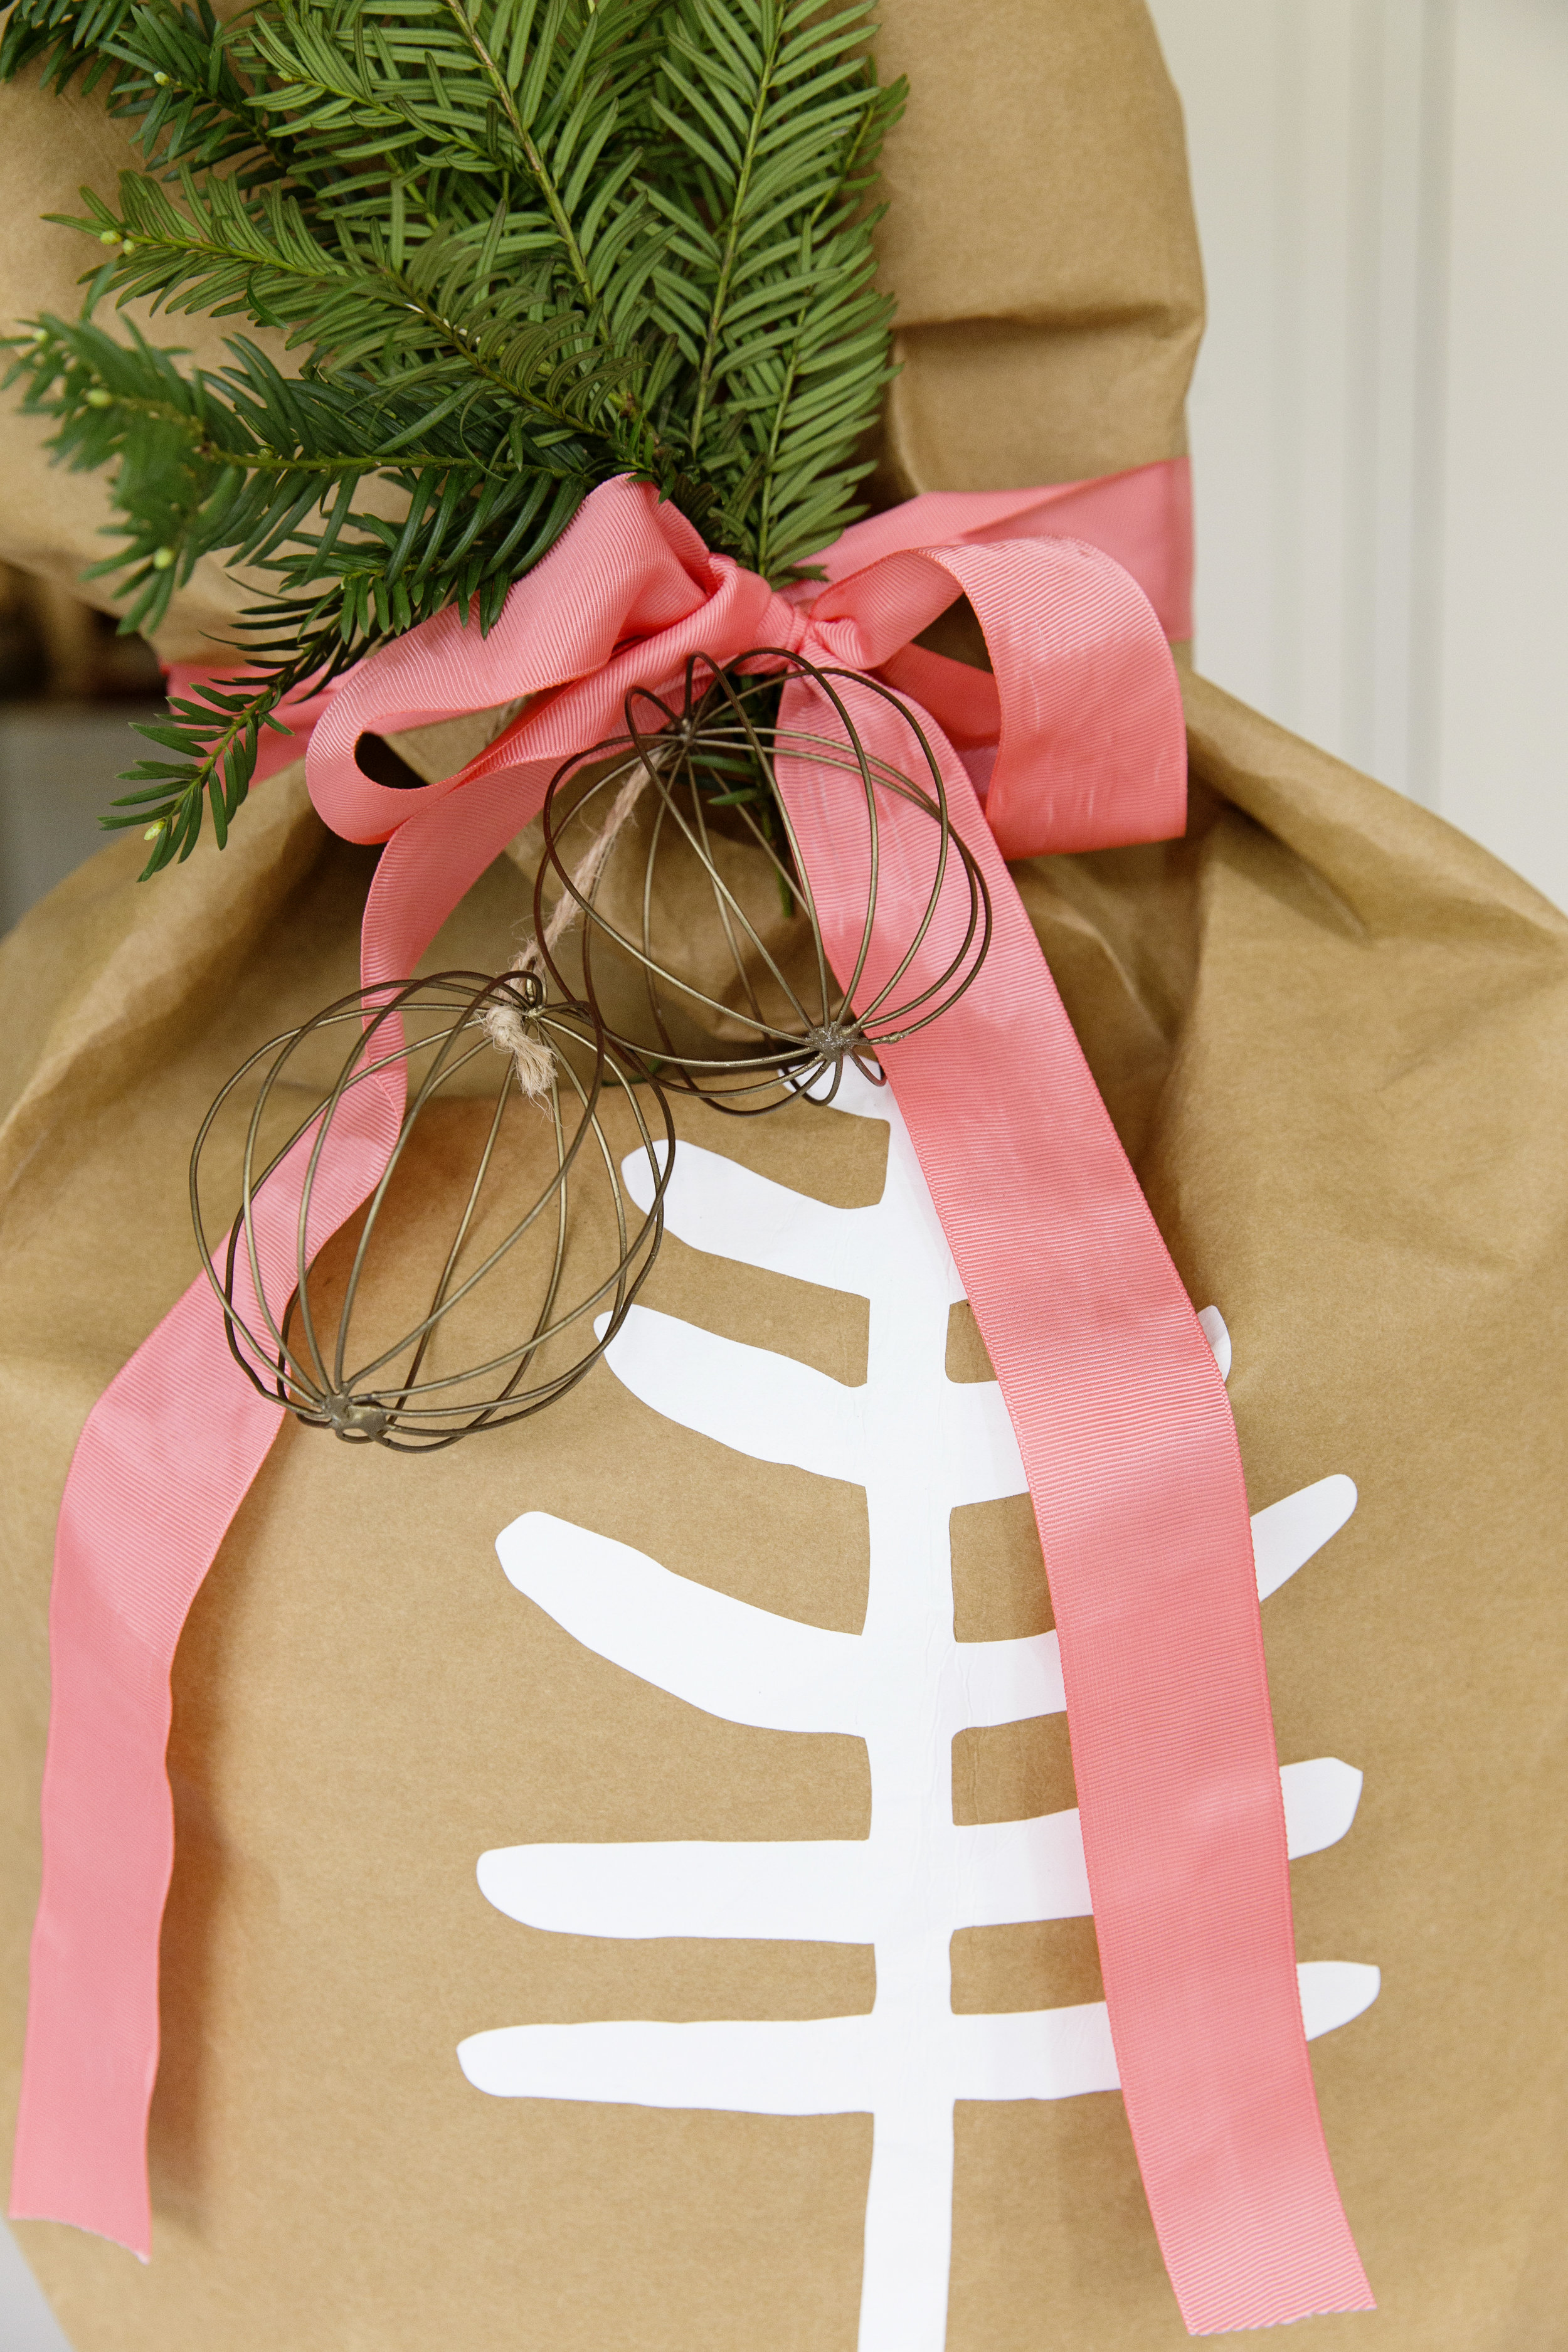 Gift Wrapping 046.JPG